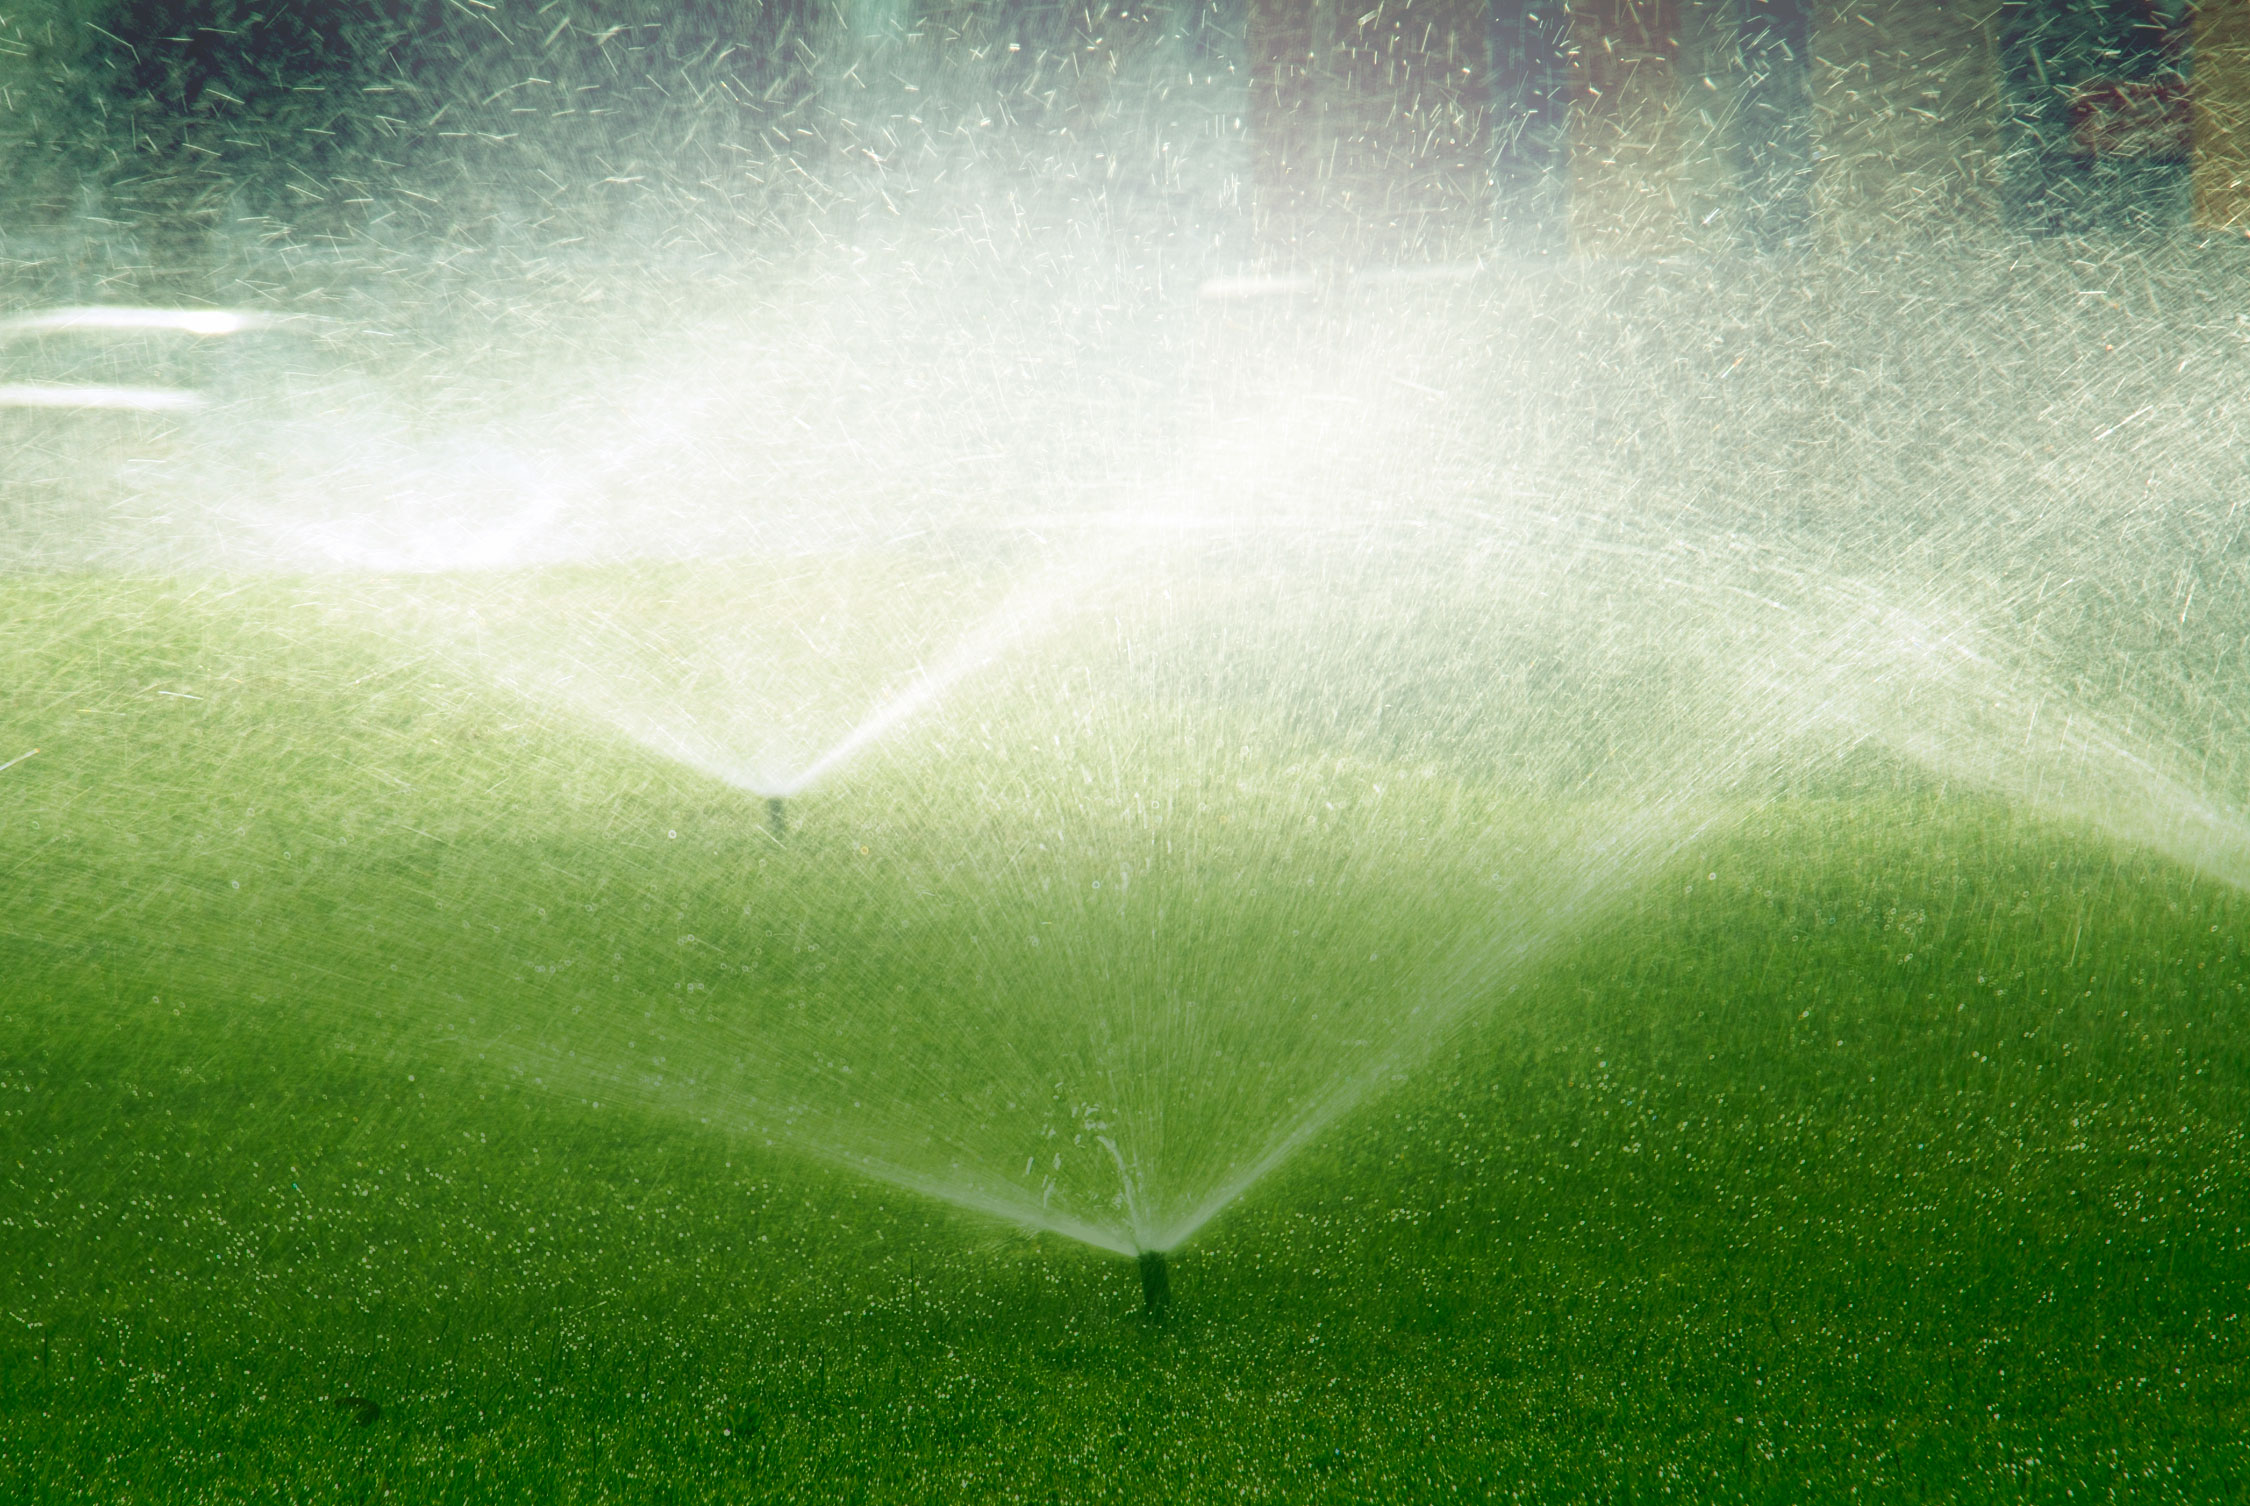 Recommended Watering Run Time for Sprinklers